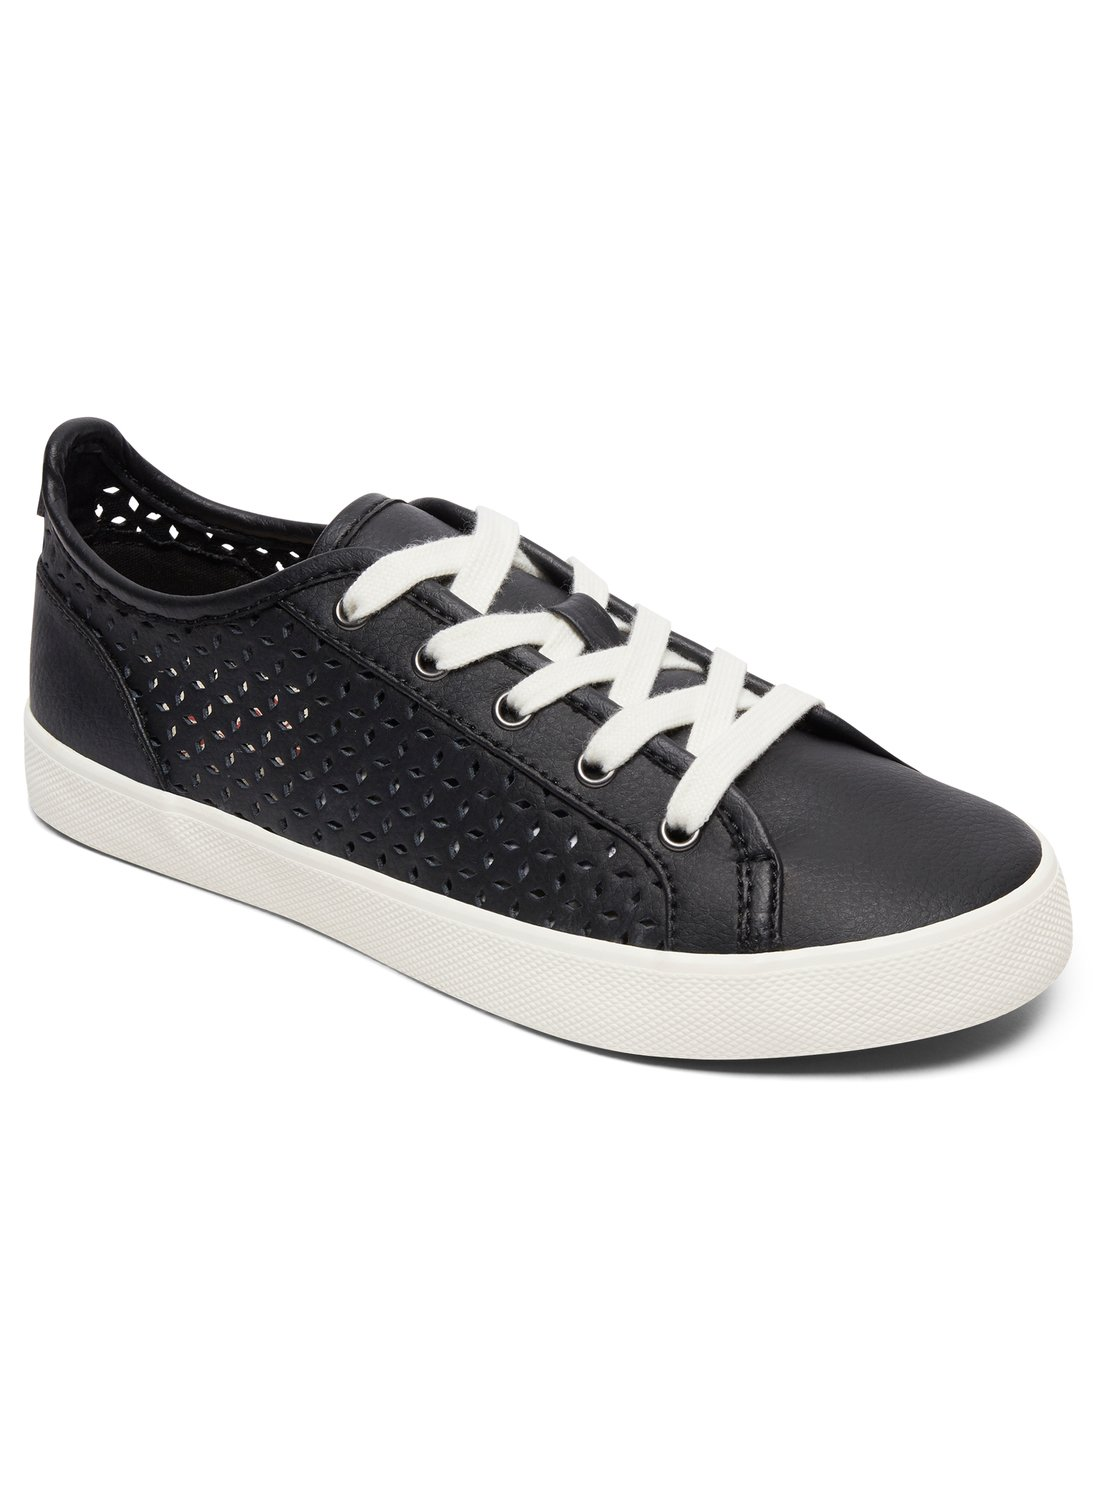 Discount Roxy Callie Black Trainers for Women Online Sale